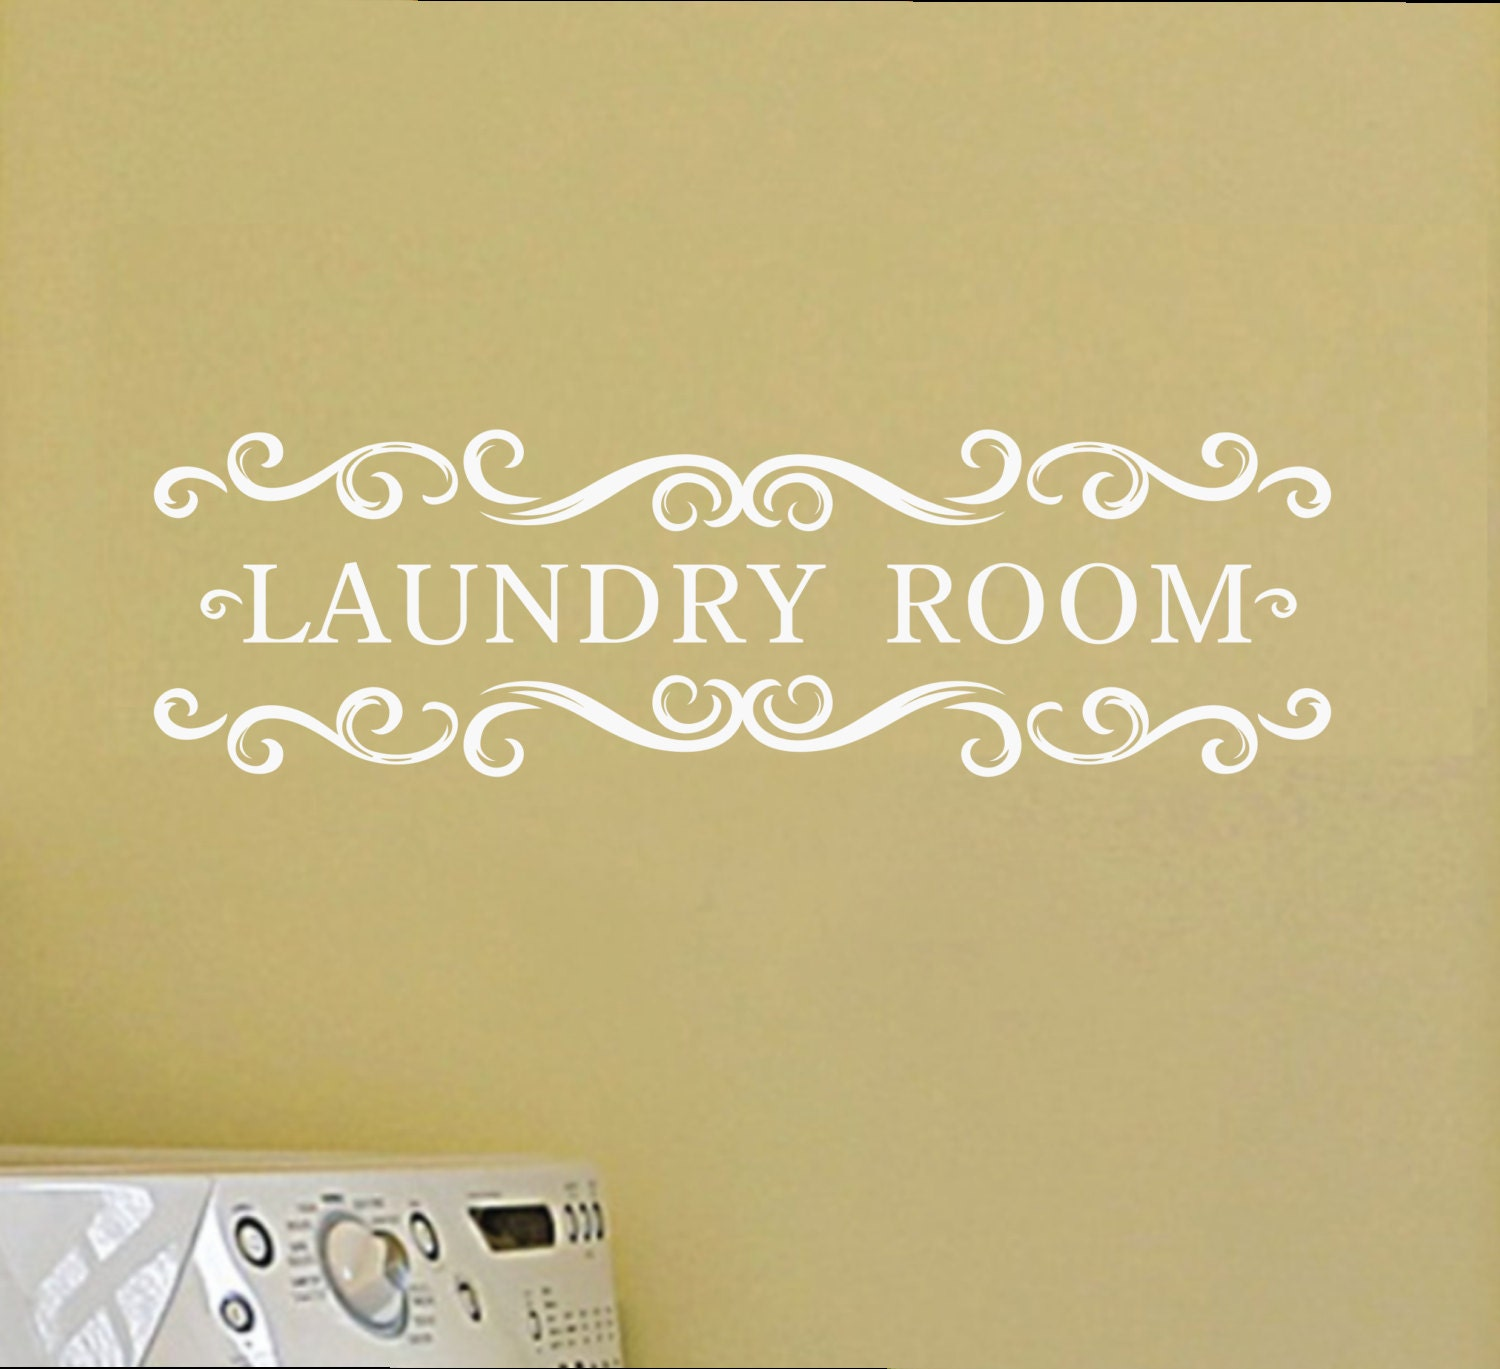 Laundry Room Vinyl Wall Decal - Vintage Style Wall Decal Wall Vinyl ...